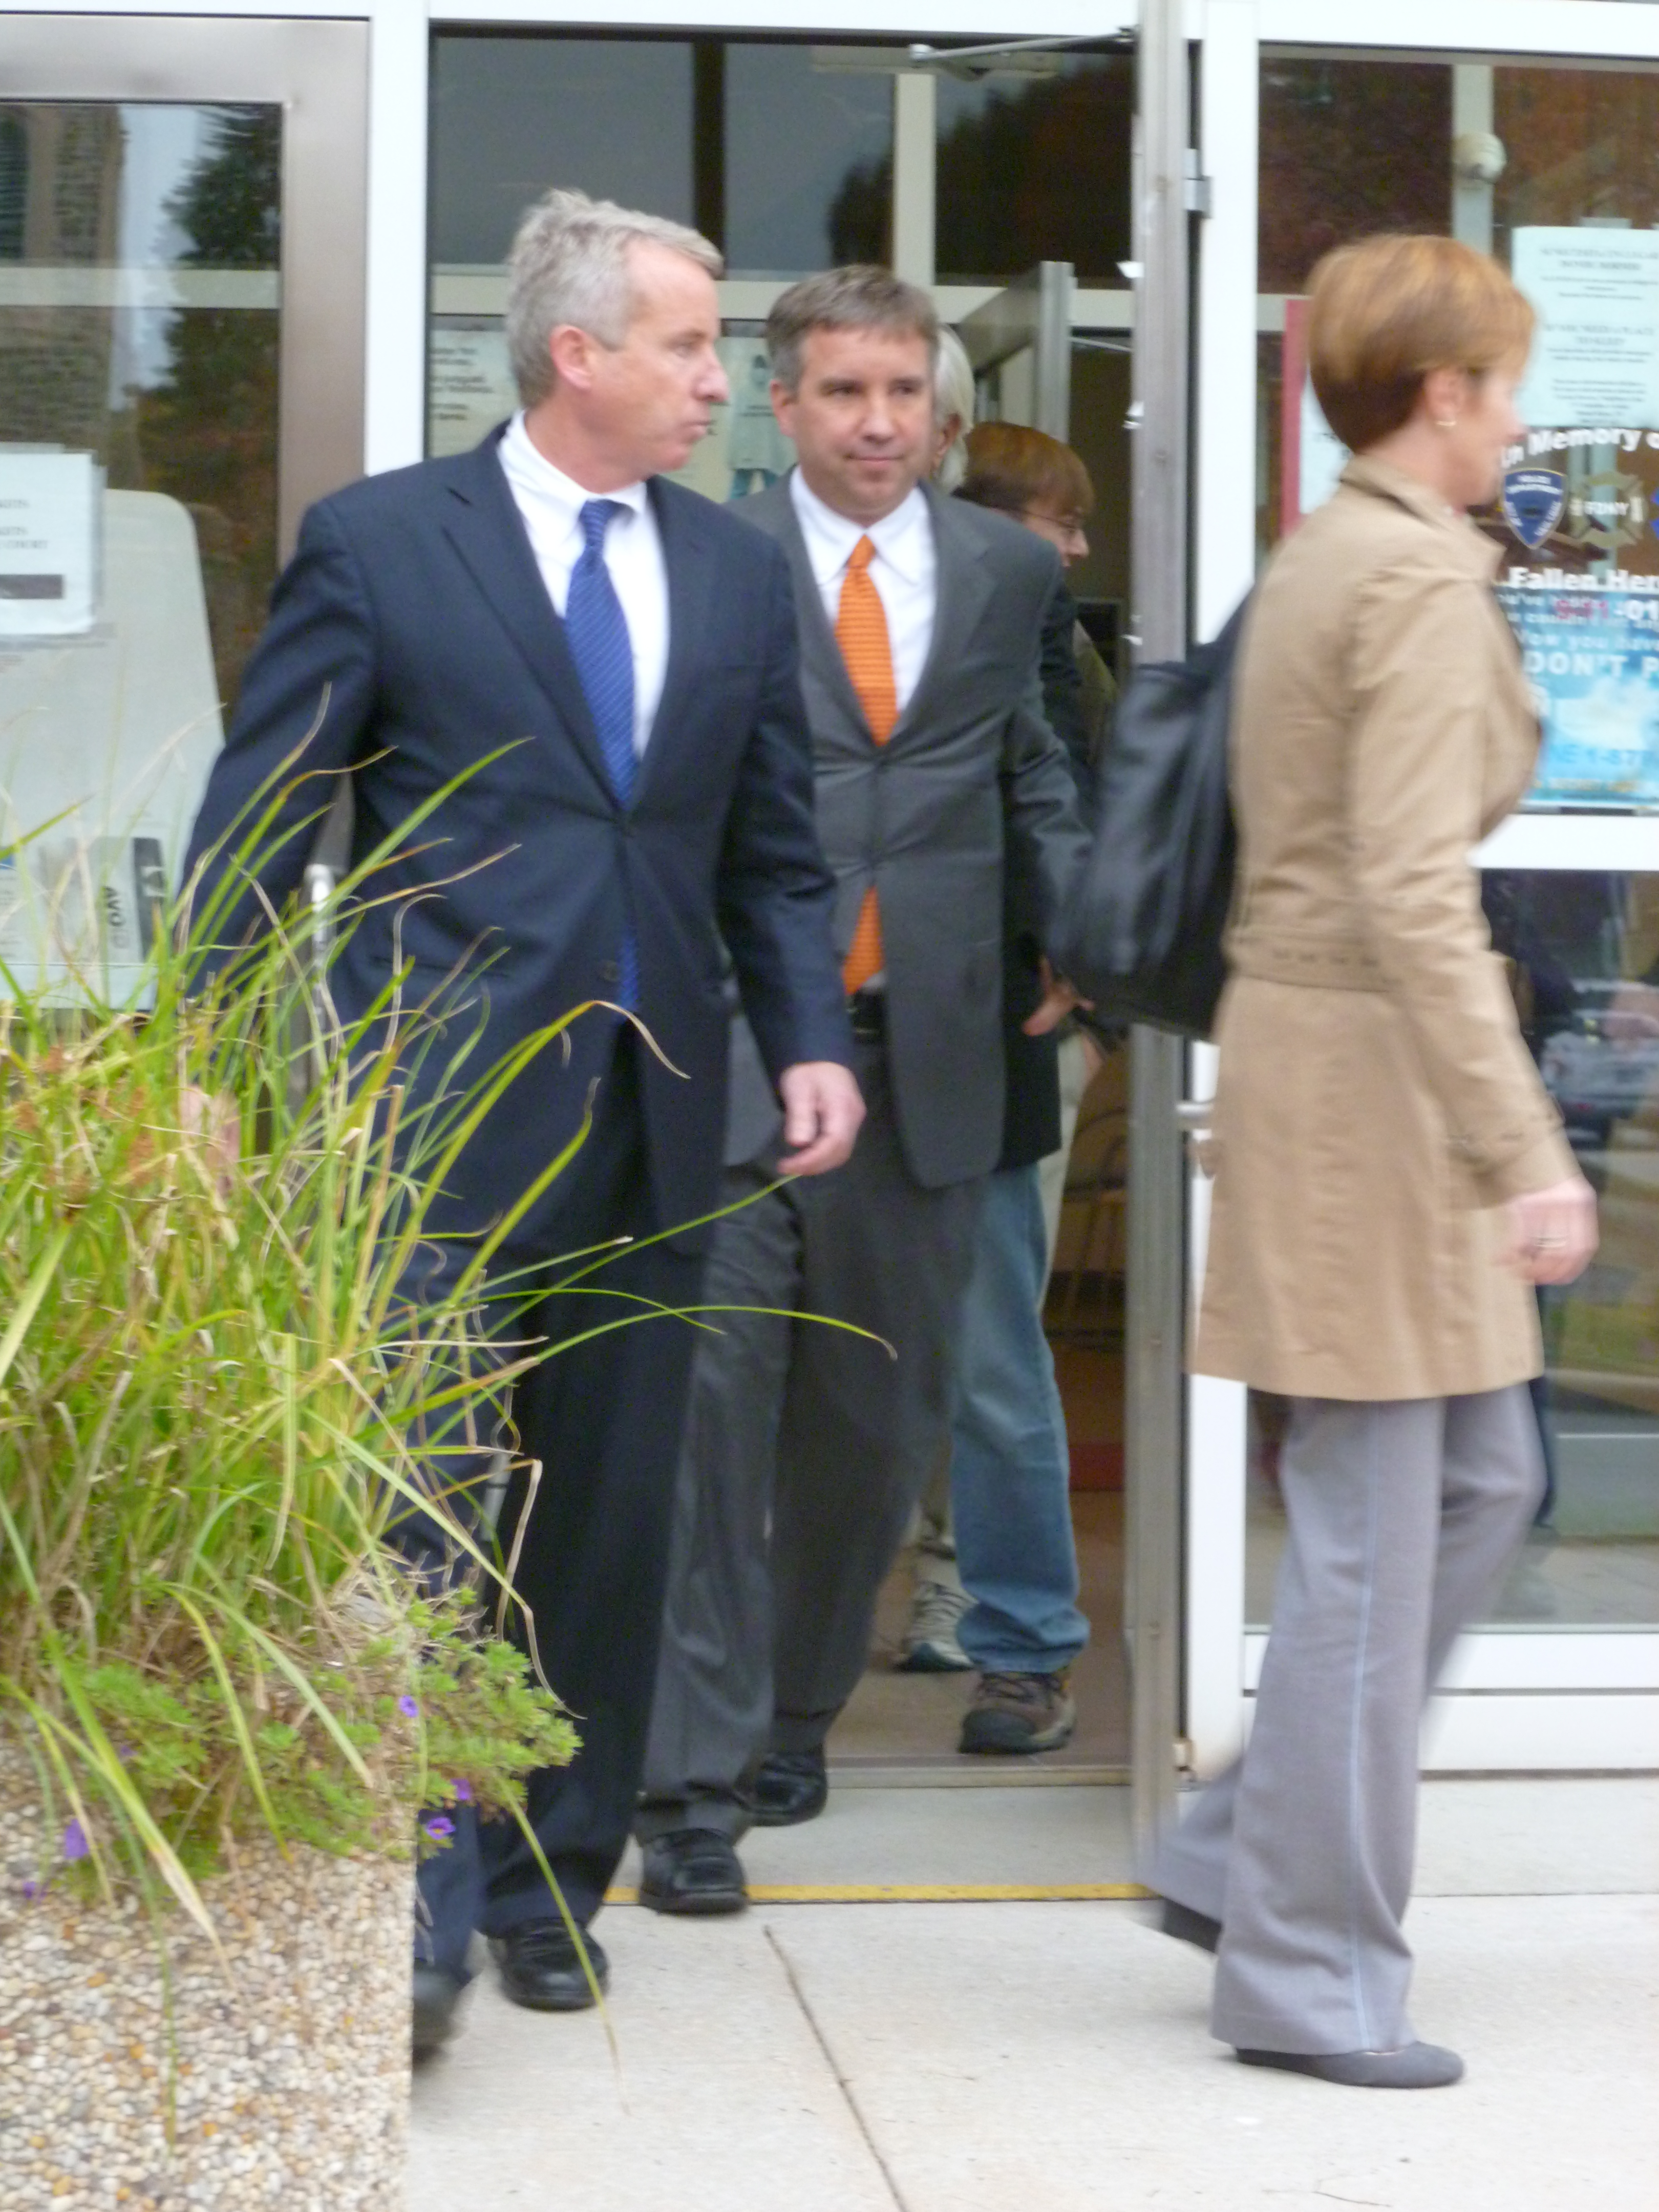 Douglas Kennedy leaves Mount Kisco Village Court on the fourth day of his trial. The defense called emergency room physician Dr. Timothy Haydock as a witness Thursday.